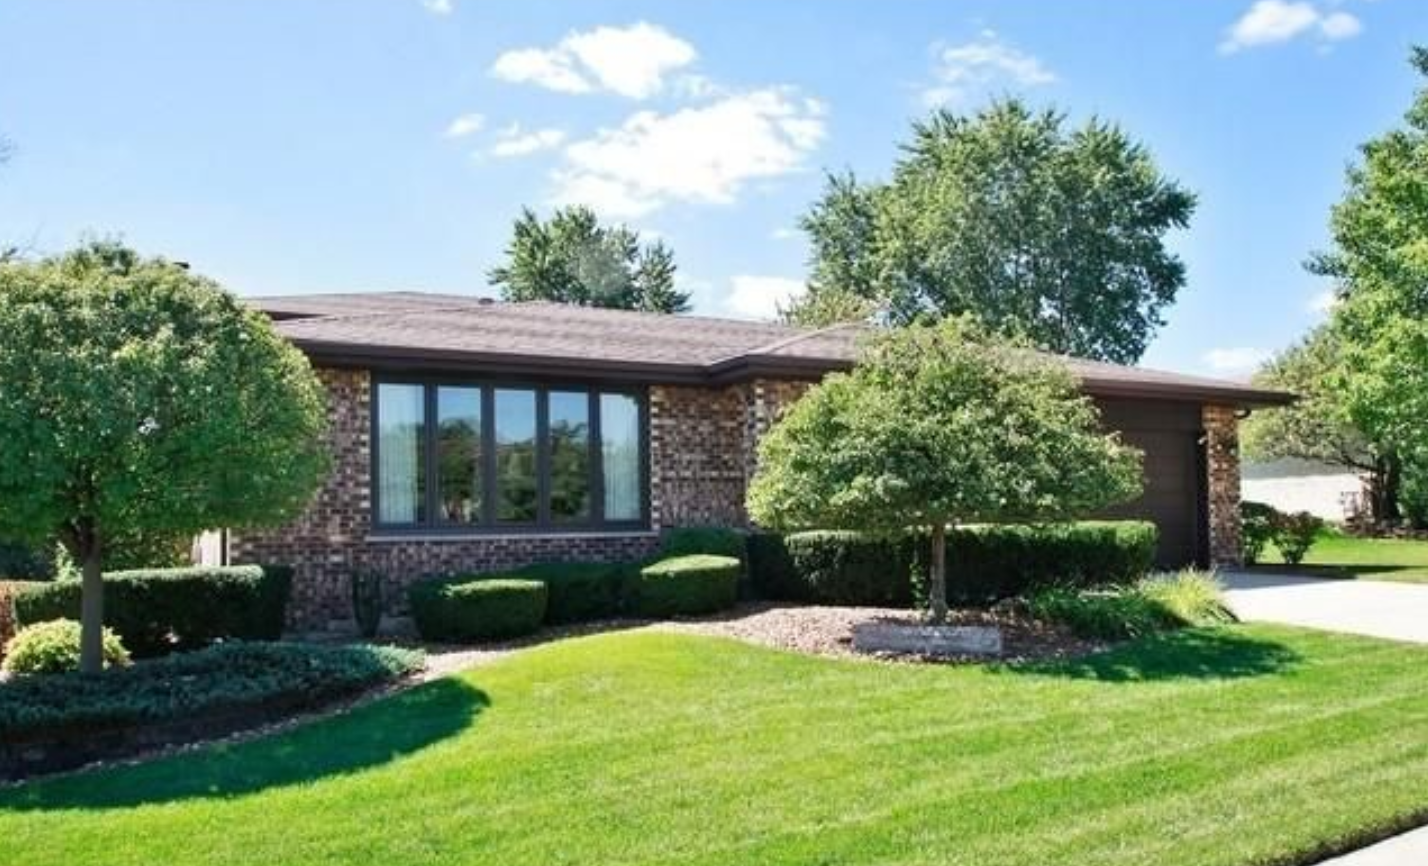 Orland Park, Illinois (Chicago-Naperville-Elgin, IL-IN-WI); list price: $299,900; square footage: 2,200; beds/baths: 4/2.5